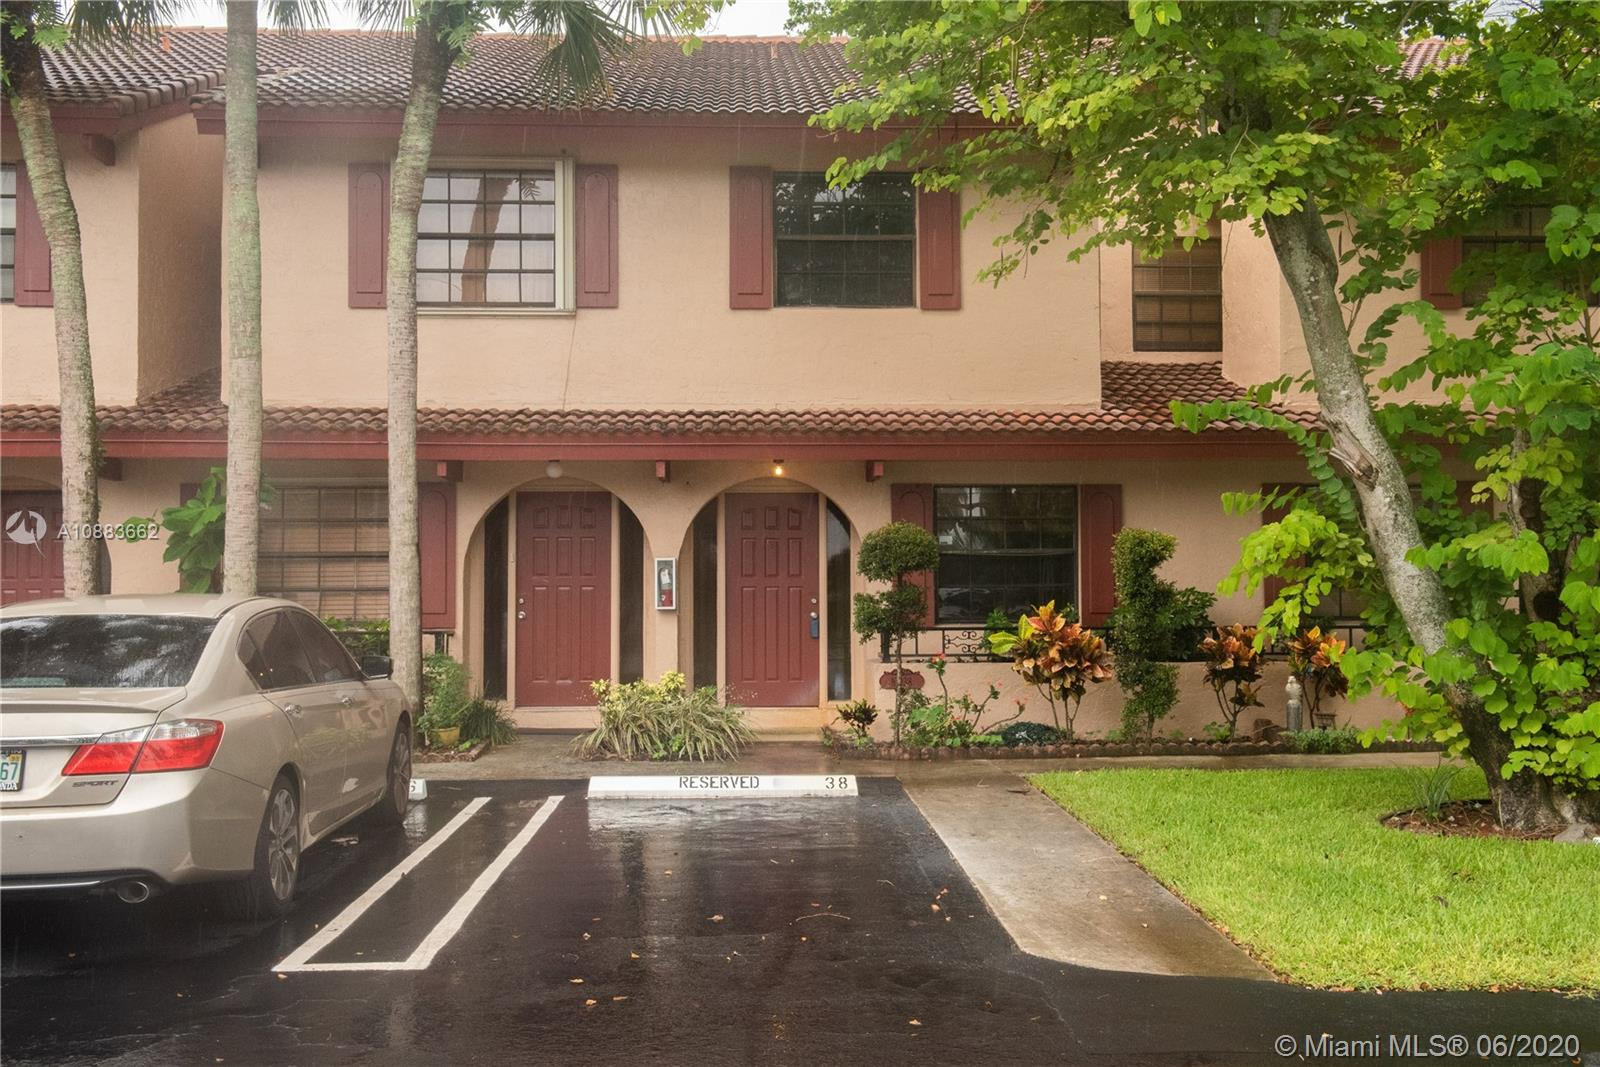 STUNNING 3 BED - 2 1/2 BATH TOWNHOME IN WEST CORAL SPRINGS!! THIS RARELY AVAILABLE COMMUNITY AND HOME IS THE TRUE DEFINITION OF BEING CENTRALLY LOCATED. SCHOOLS, SHOPPING, ENTERTAINMENT, RESTAURANTS AND MAJOR HIGHWAYS ARE RIGHT AROUND THE CORNER. UPDATED KITCHEN, FLOORING, BATHROOMS AND WATER HEATER MAKES THIS PROPERTY MOVE-IN READY. THIS QUIET AND SMALL COMMUNITY OFFERS YOU PRIVACY AND PEACE. THE LOW MONTHLY FEE COVERS EXTERIOR INSURANCE, ROOF INSURANCE, WATER, LAWN CARE/OUTSIDE MAINTENANCE AND COMMUNITY POOL. THIS PROPERTY ONLY NEEDS ONE THING....THE RIGHT FAMILY TO CALL IT HOME!